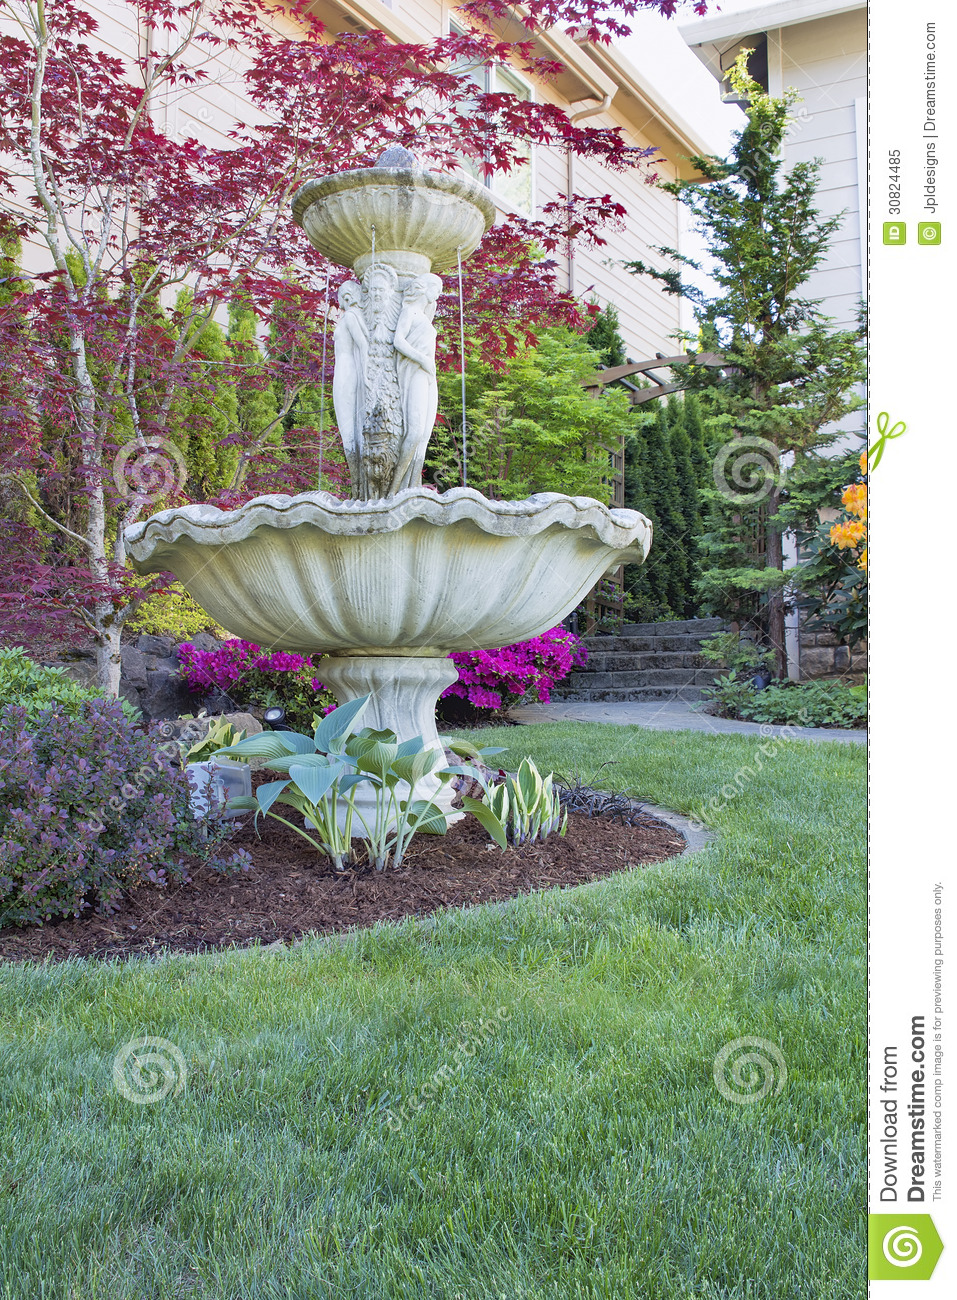 Renaissance Water Fountain In Front Lawn